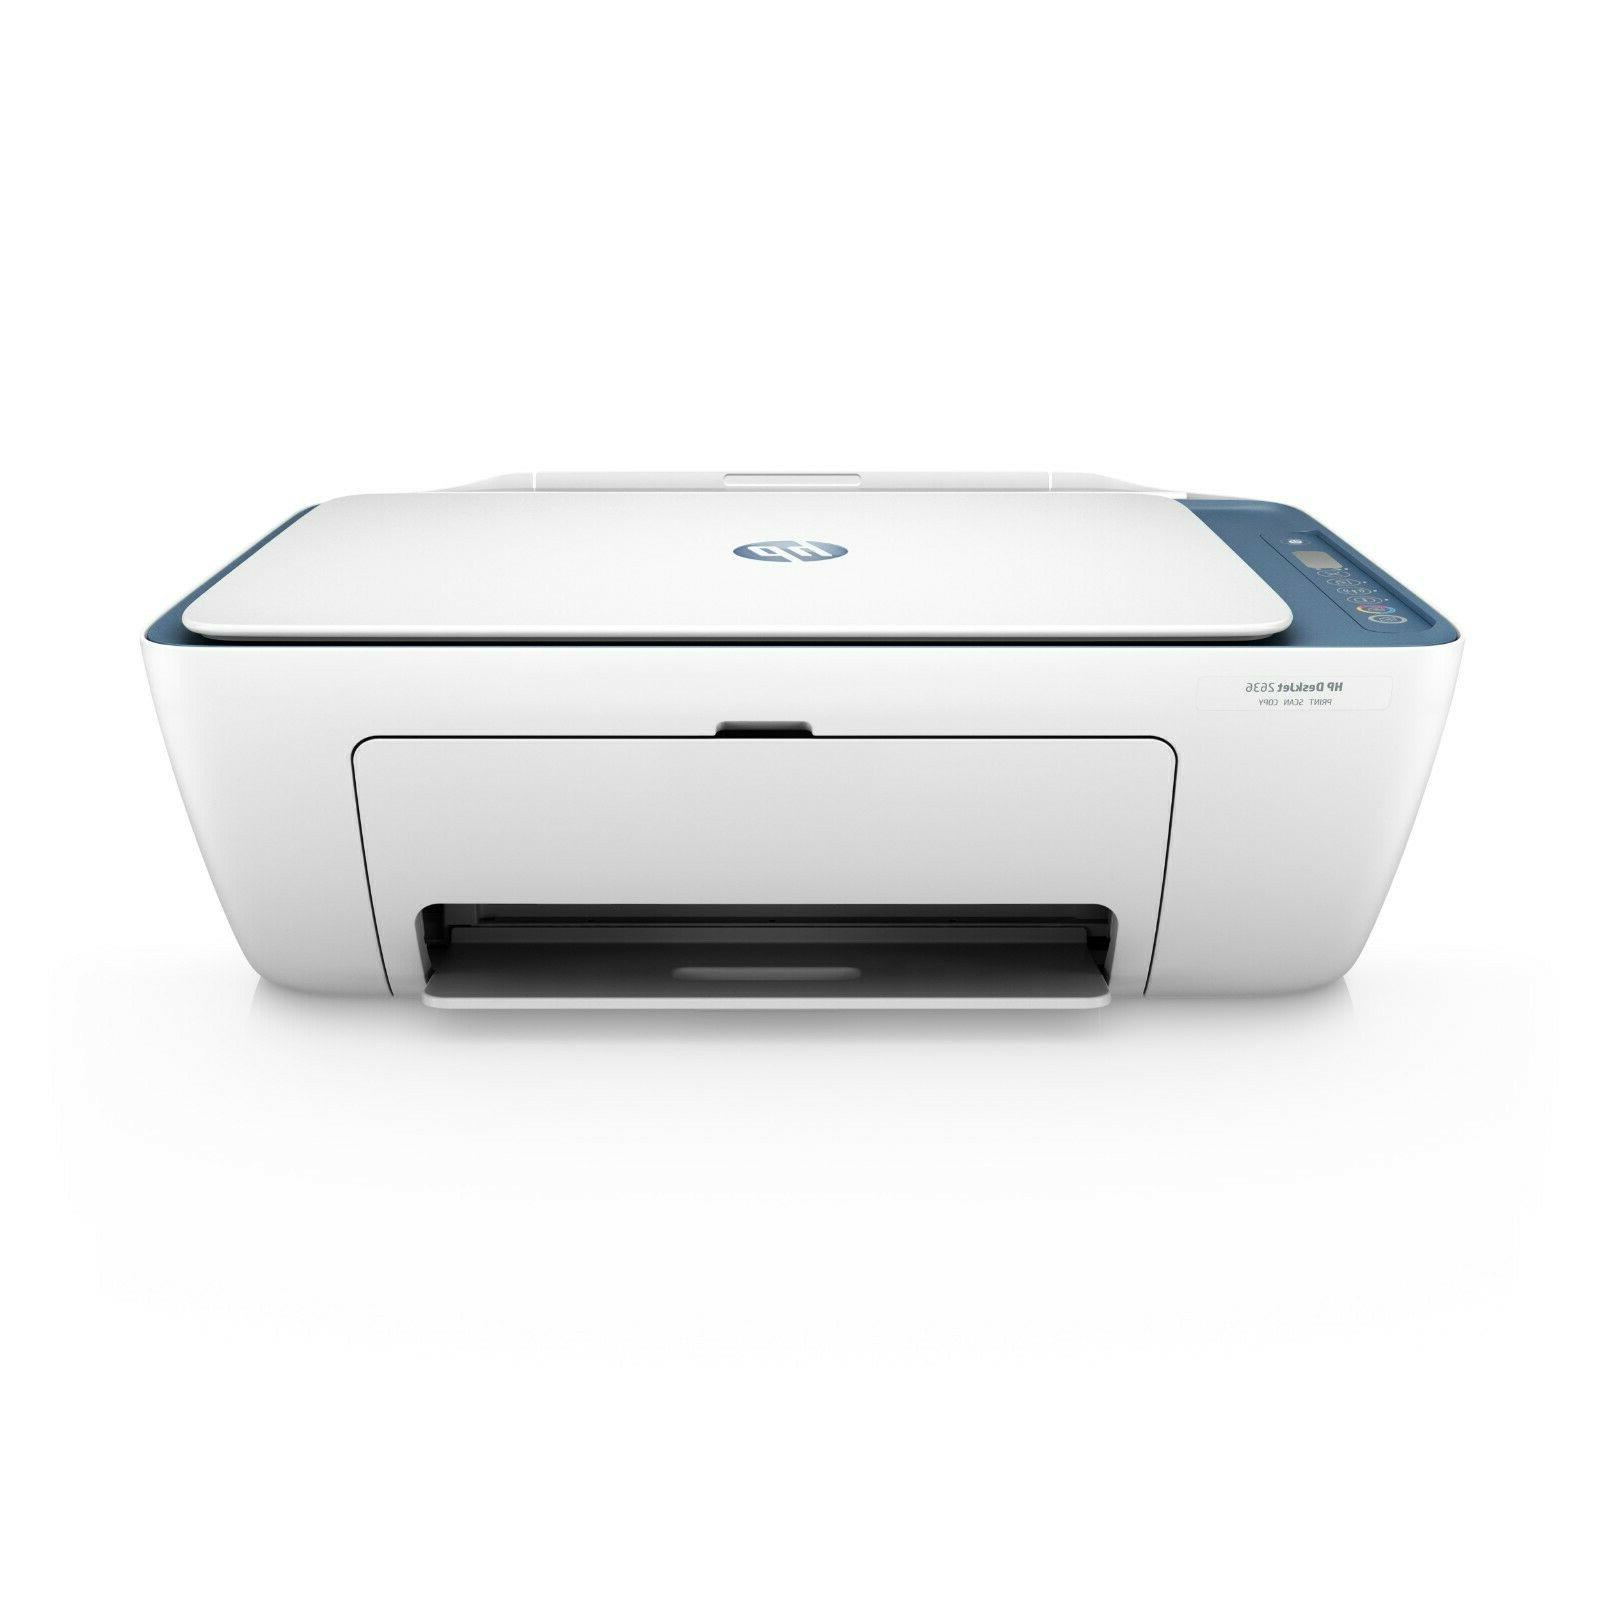 Computer Printers For Home 3N1 Printer Best Rated All In One